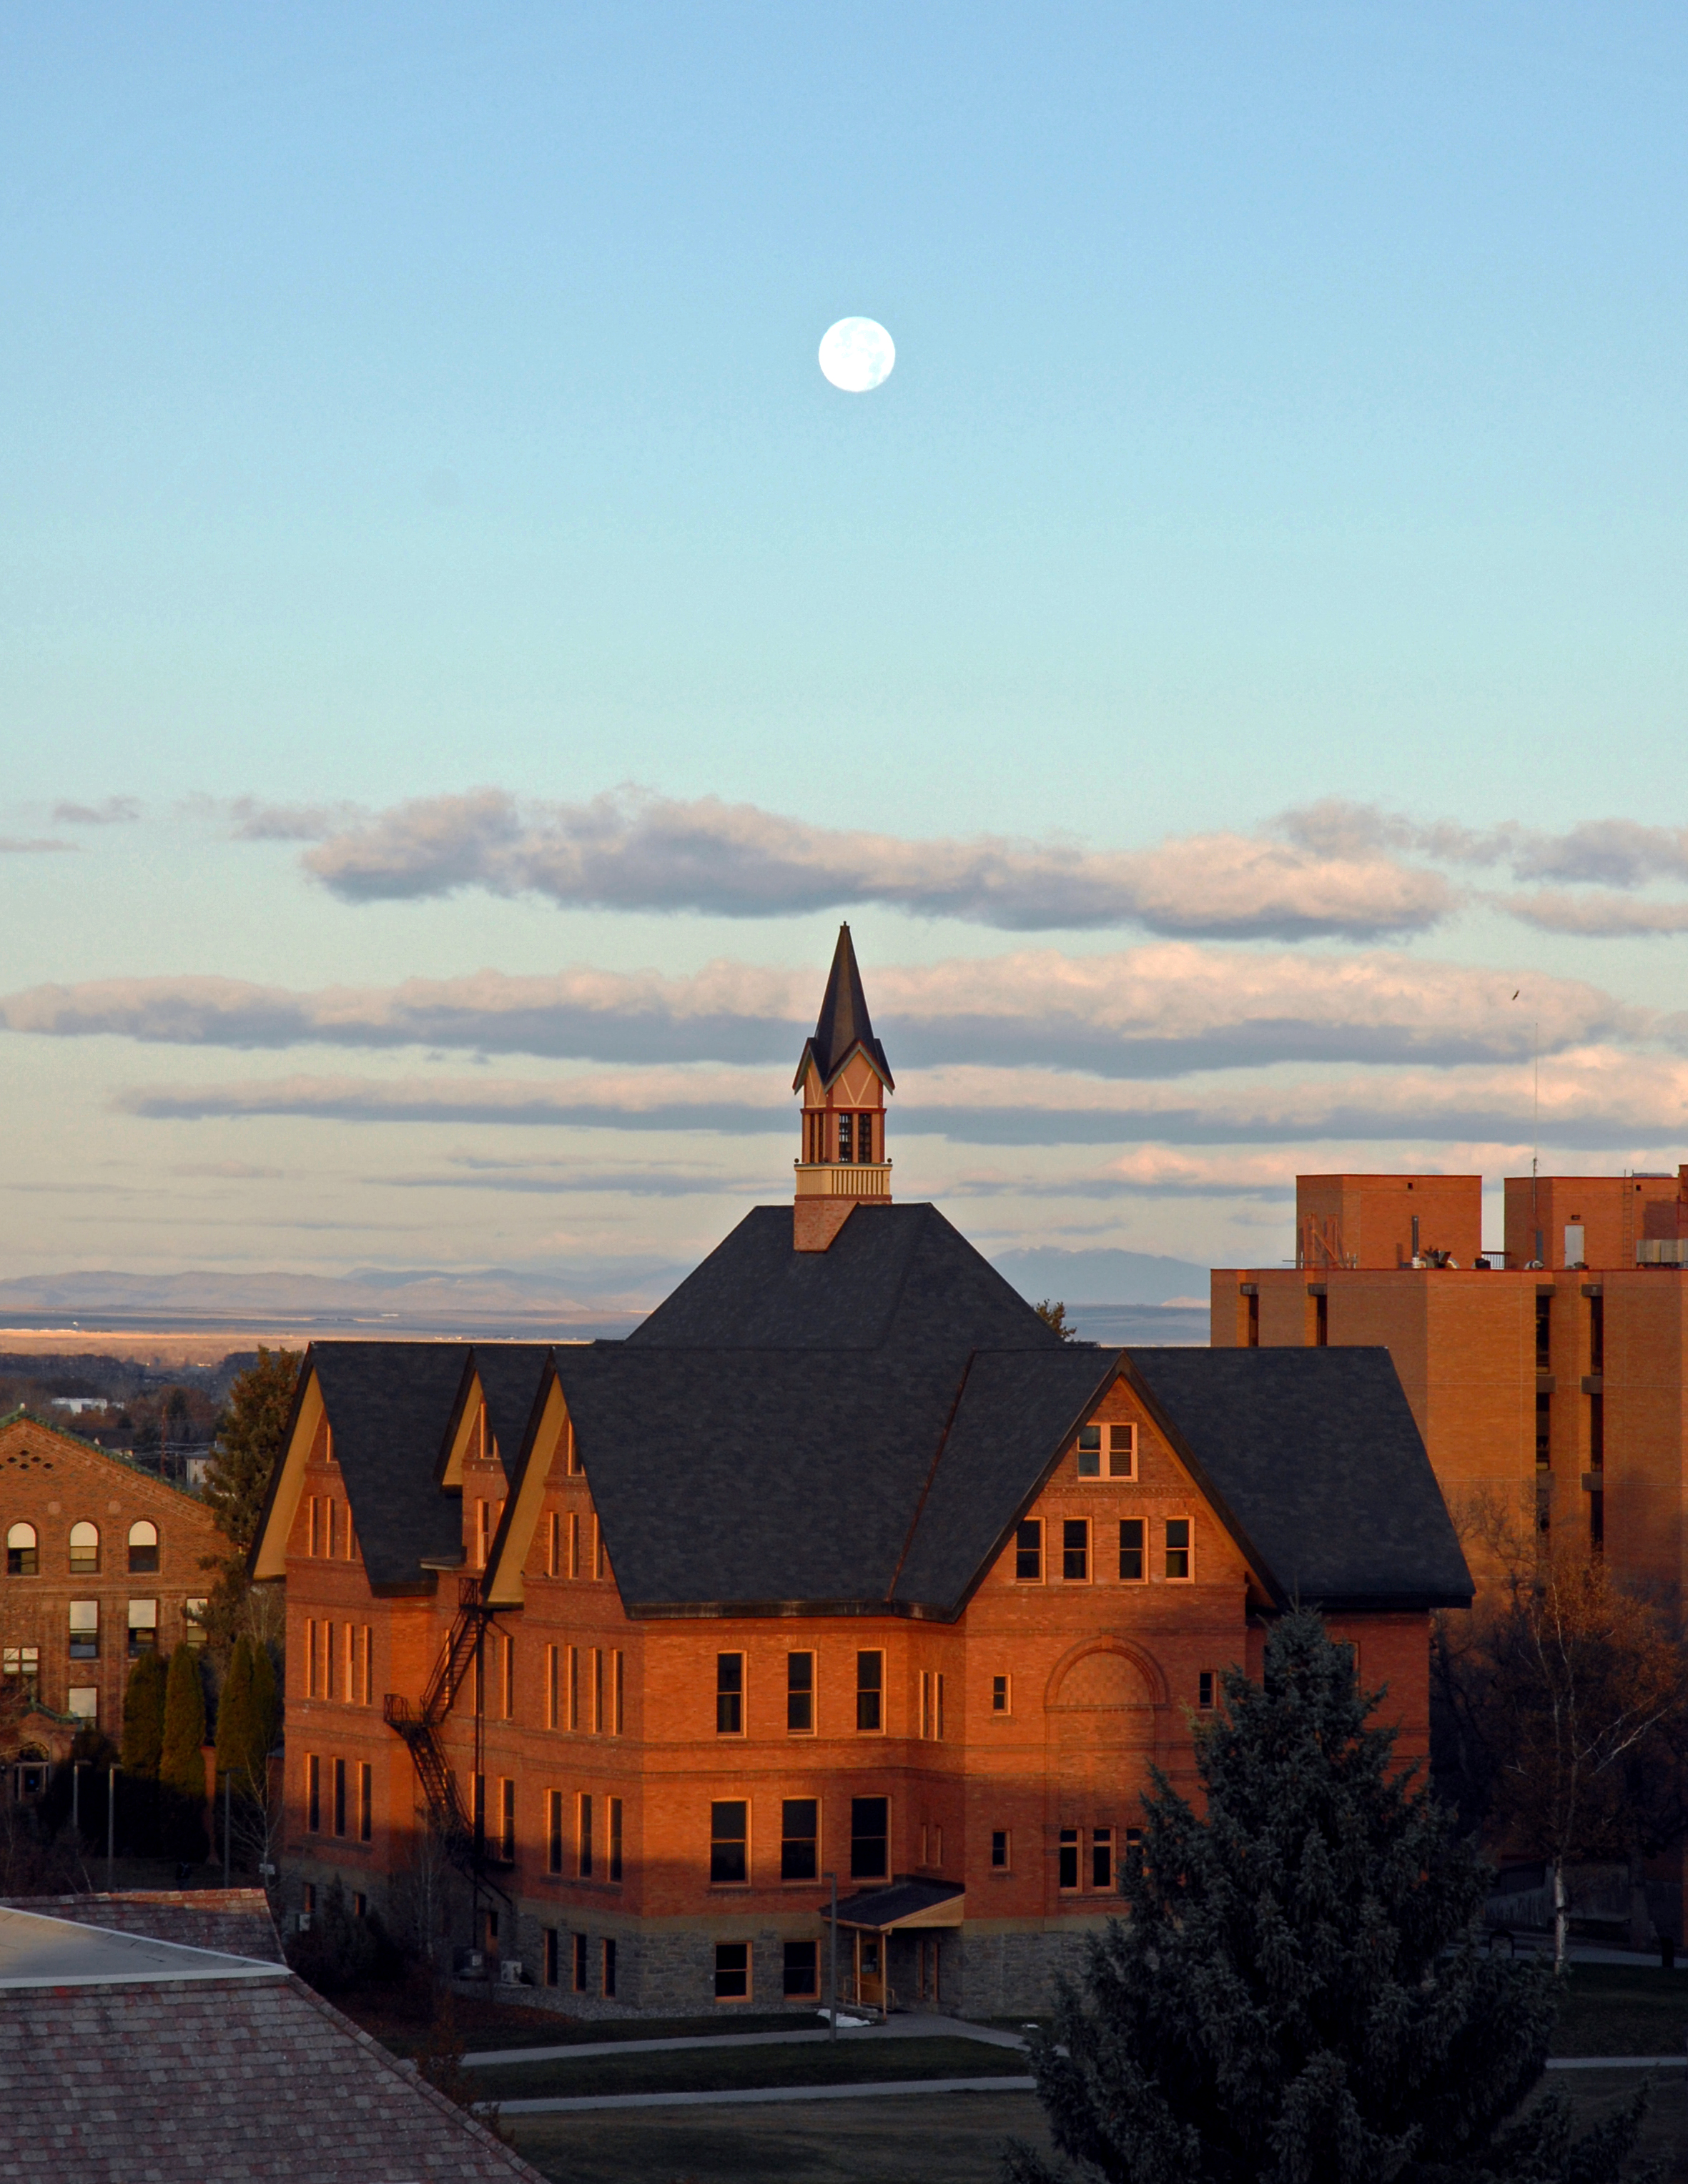 university of montana mfa creative writing ranking Best creative writing colleges in montana we have created a 2018 ranking of the best colleges in montana that offer creative writing degrees to help you find a school that fits your needs.